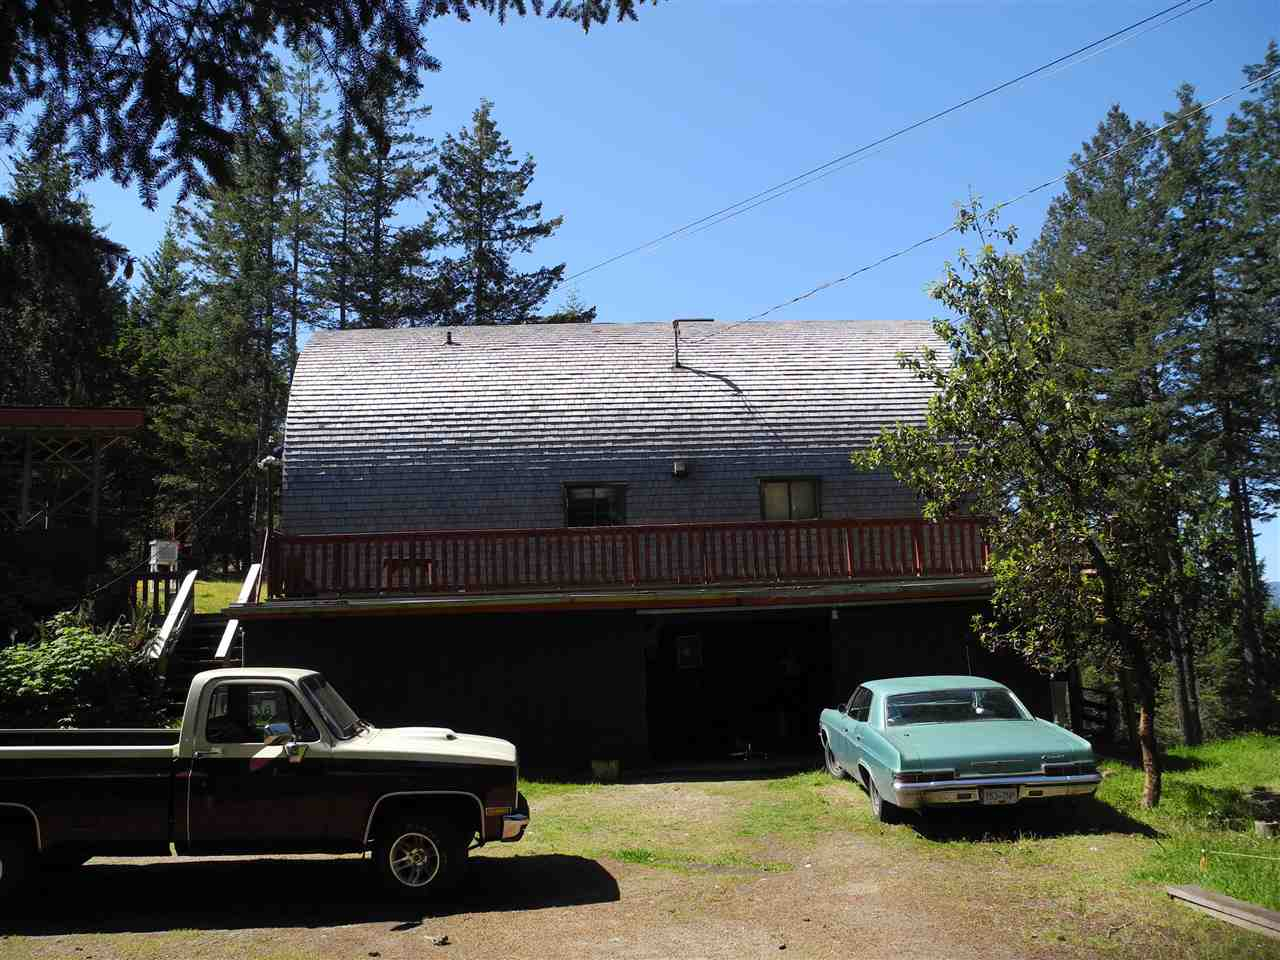 Photo 11: 4436 MCLINTOCK Road in Pender Harbour: Pender Harbour Egmont House for sale (Sunshine Coast)  : MLS(r) # R2068891